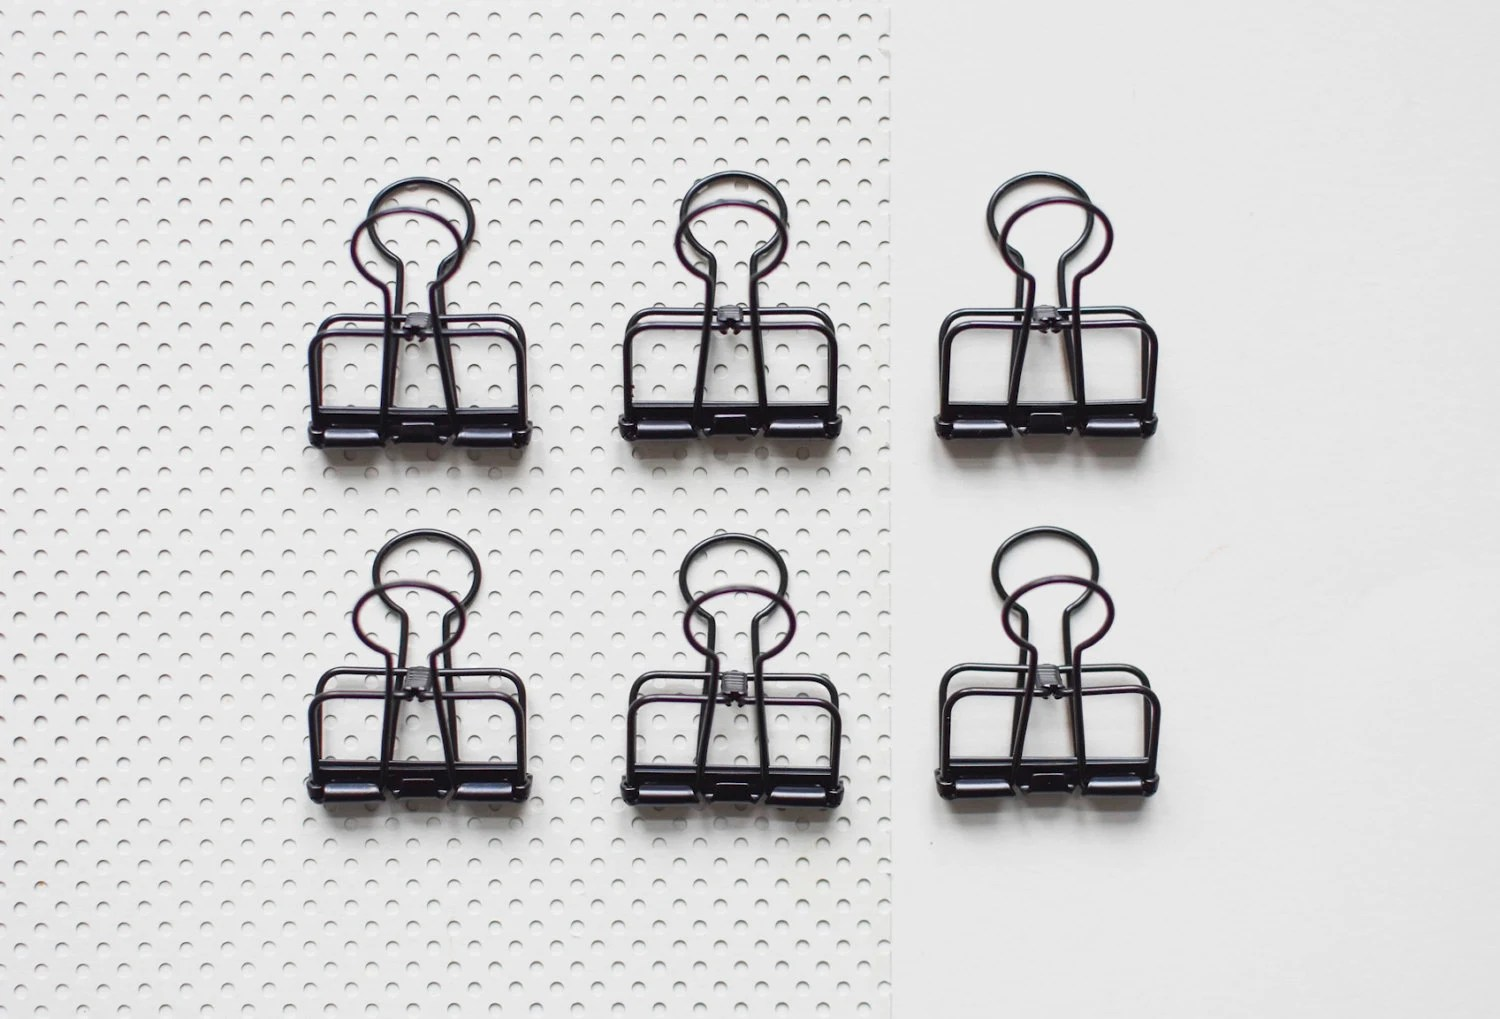 6 Black Bulldog Wire Clips Foldback Clips Metal Clips gold